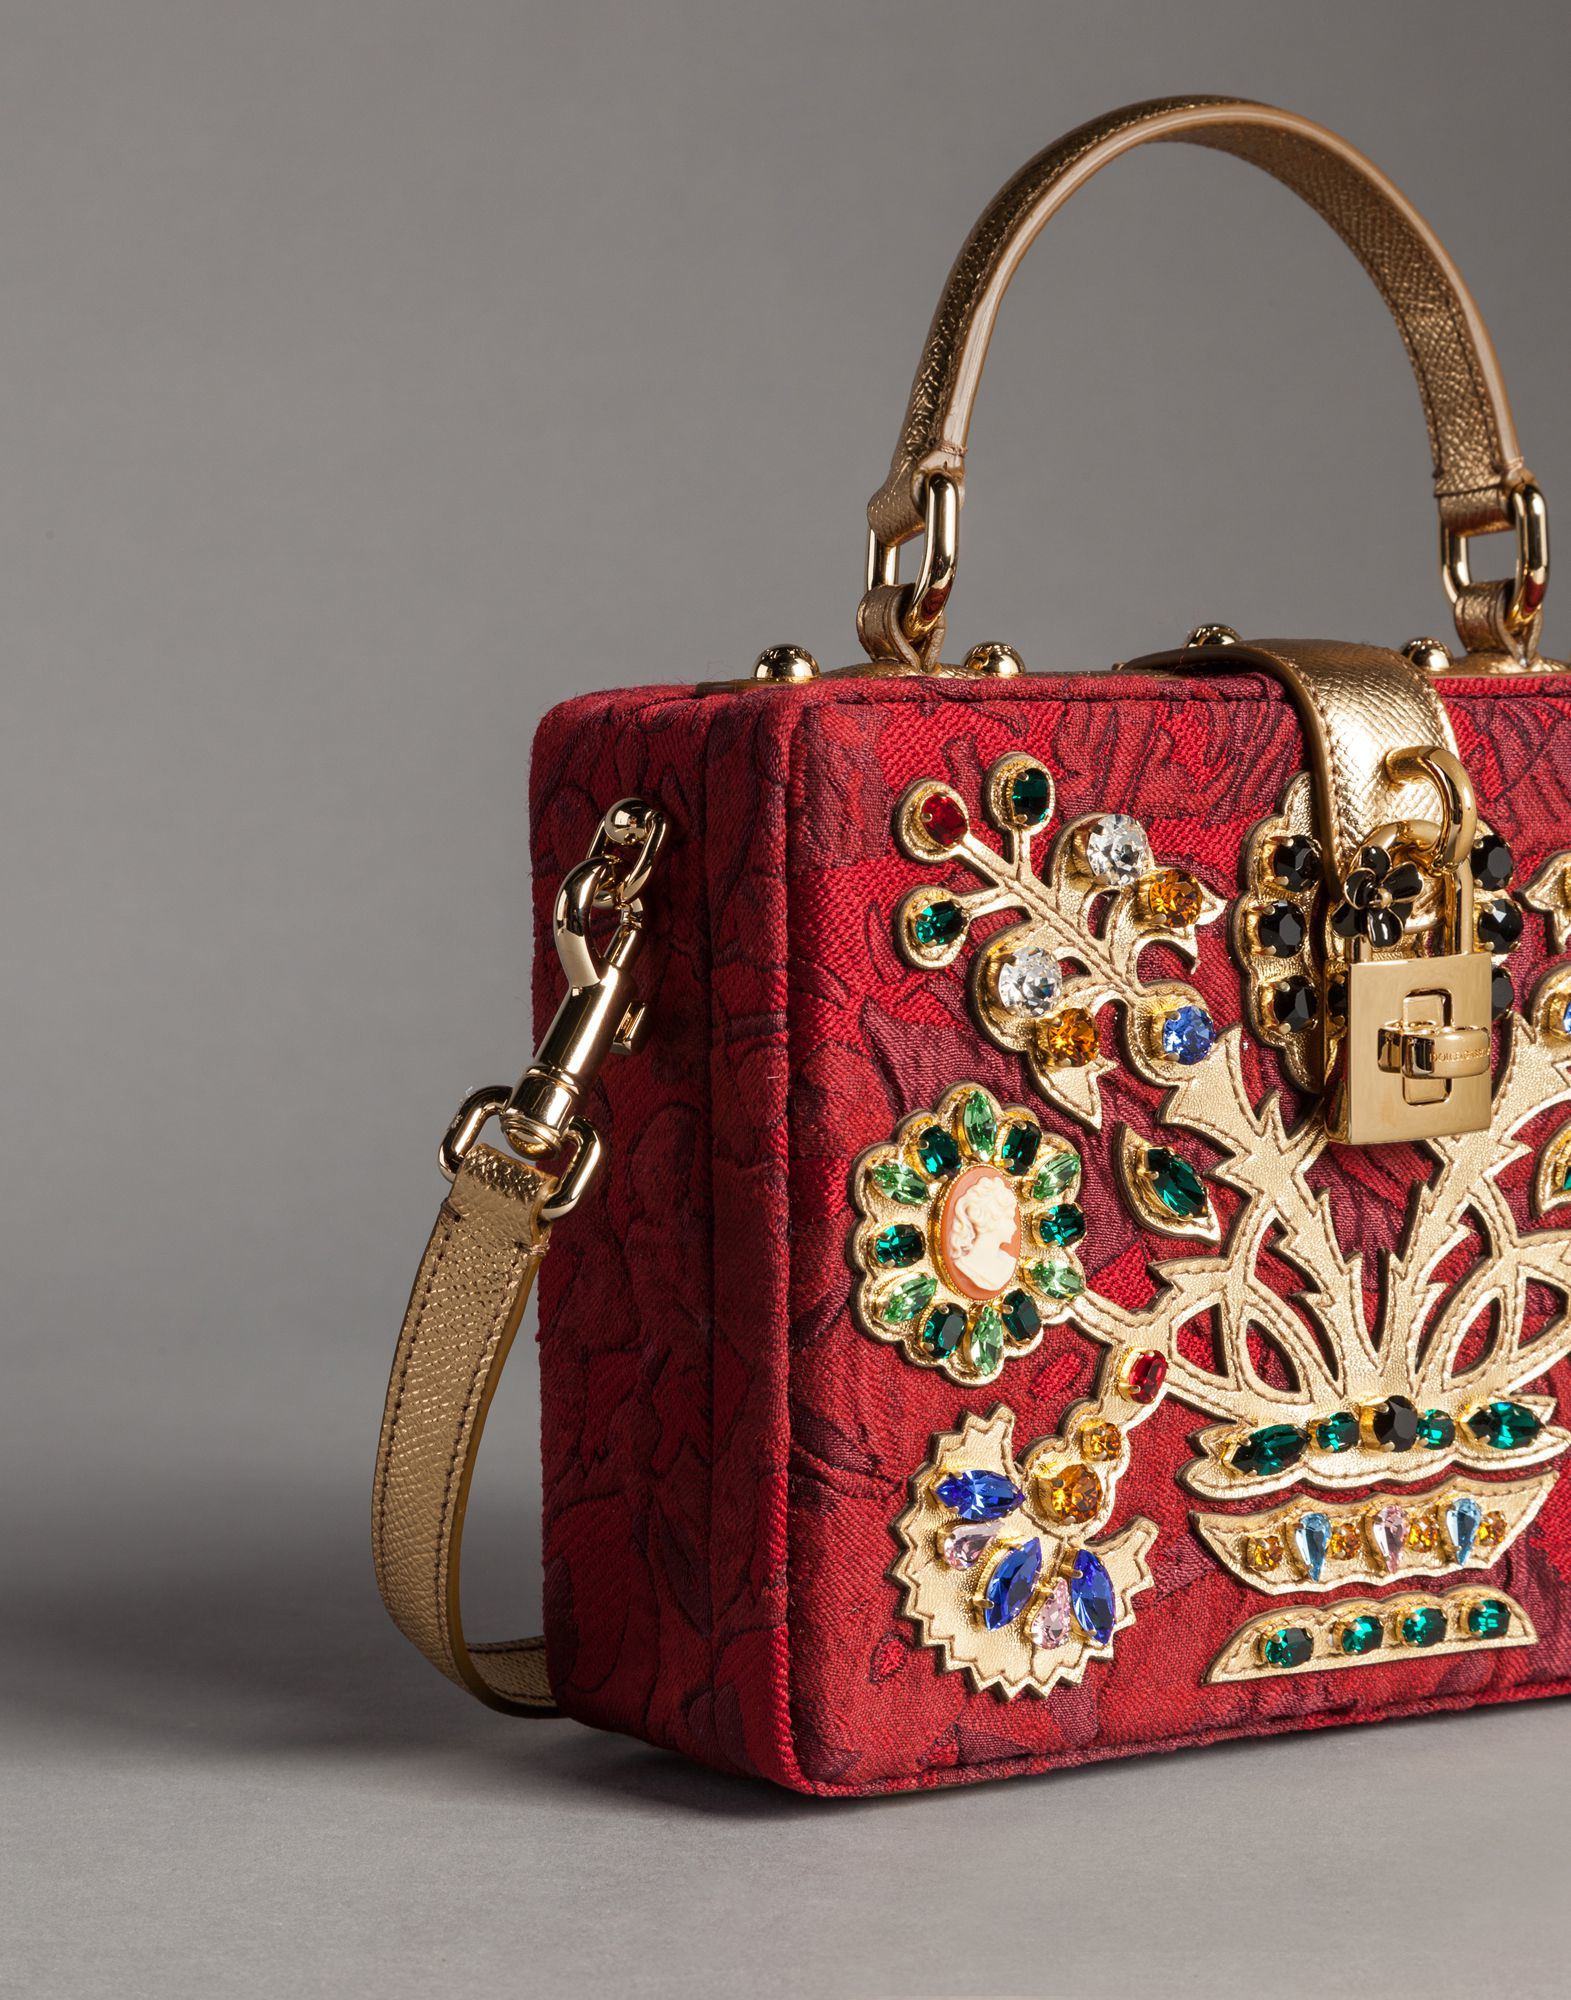 f4bcb4c57216 Pictures Of Dolce And Gabbana Bags